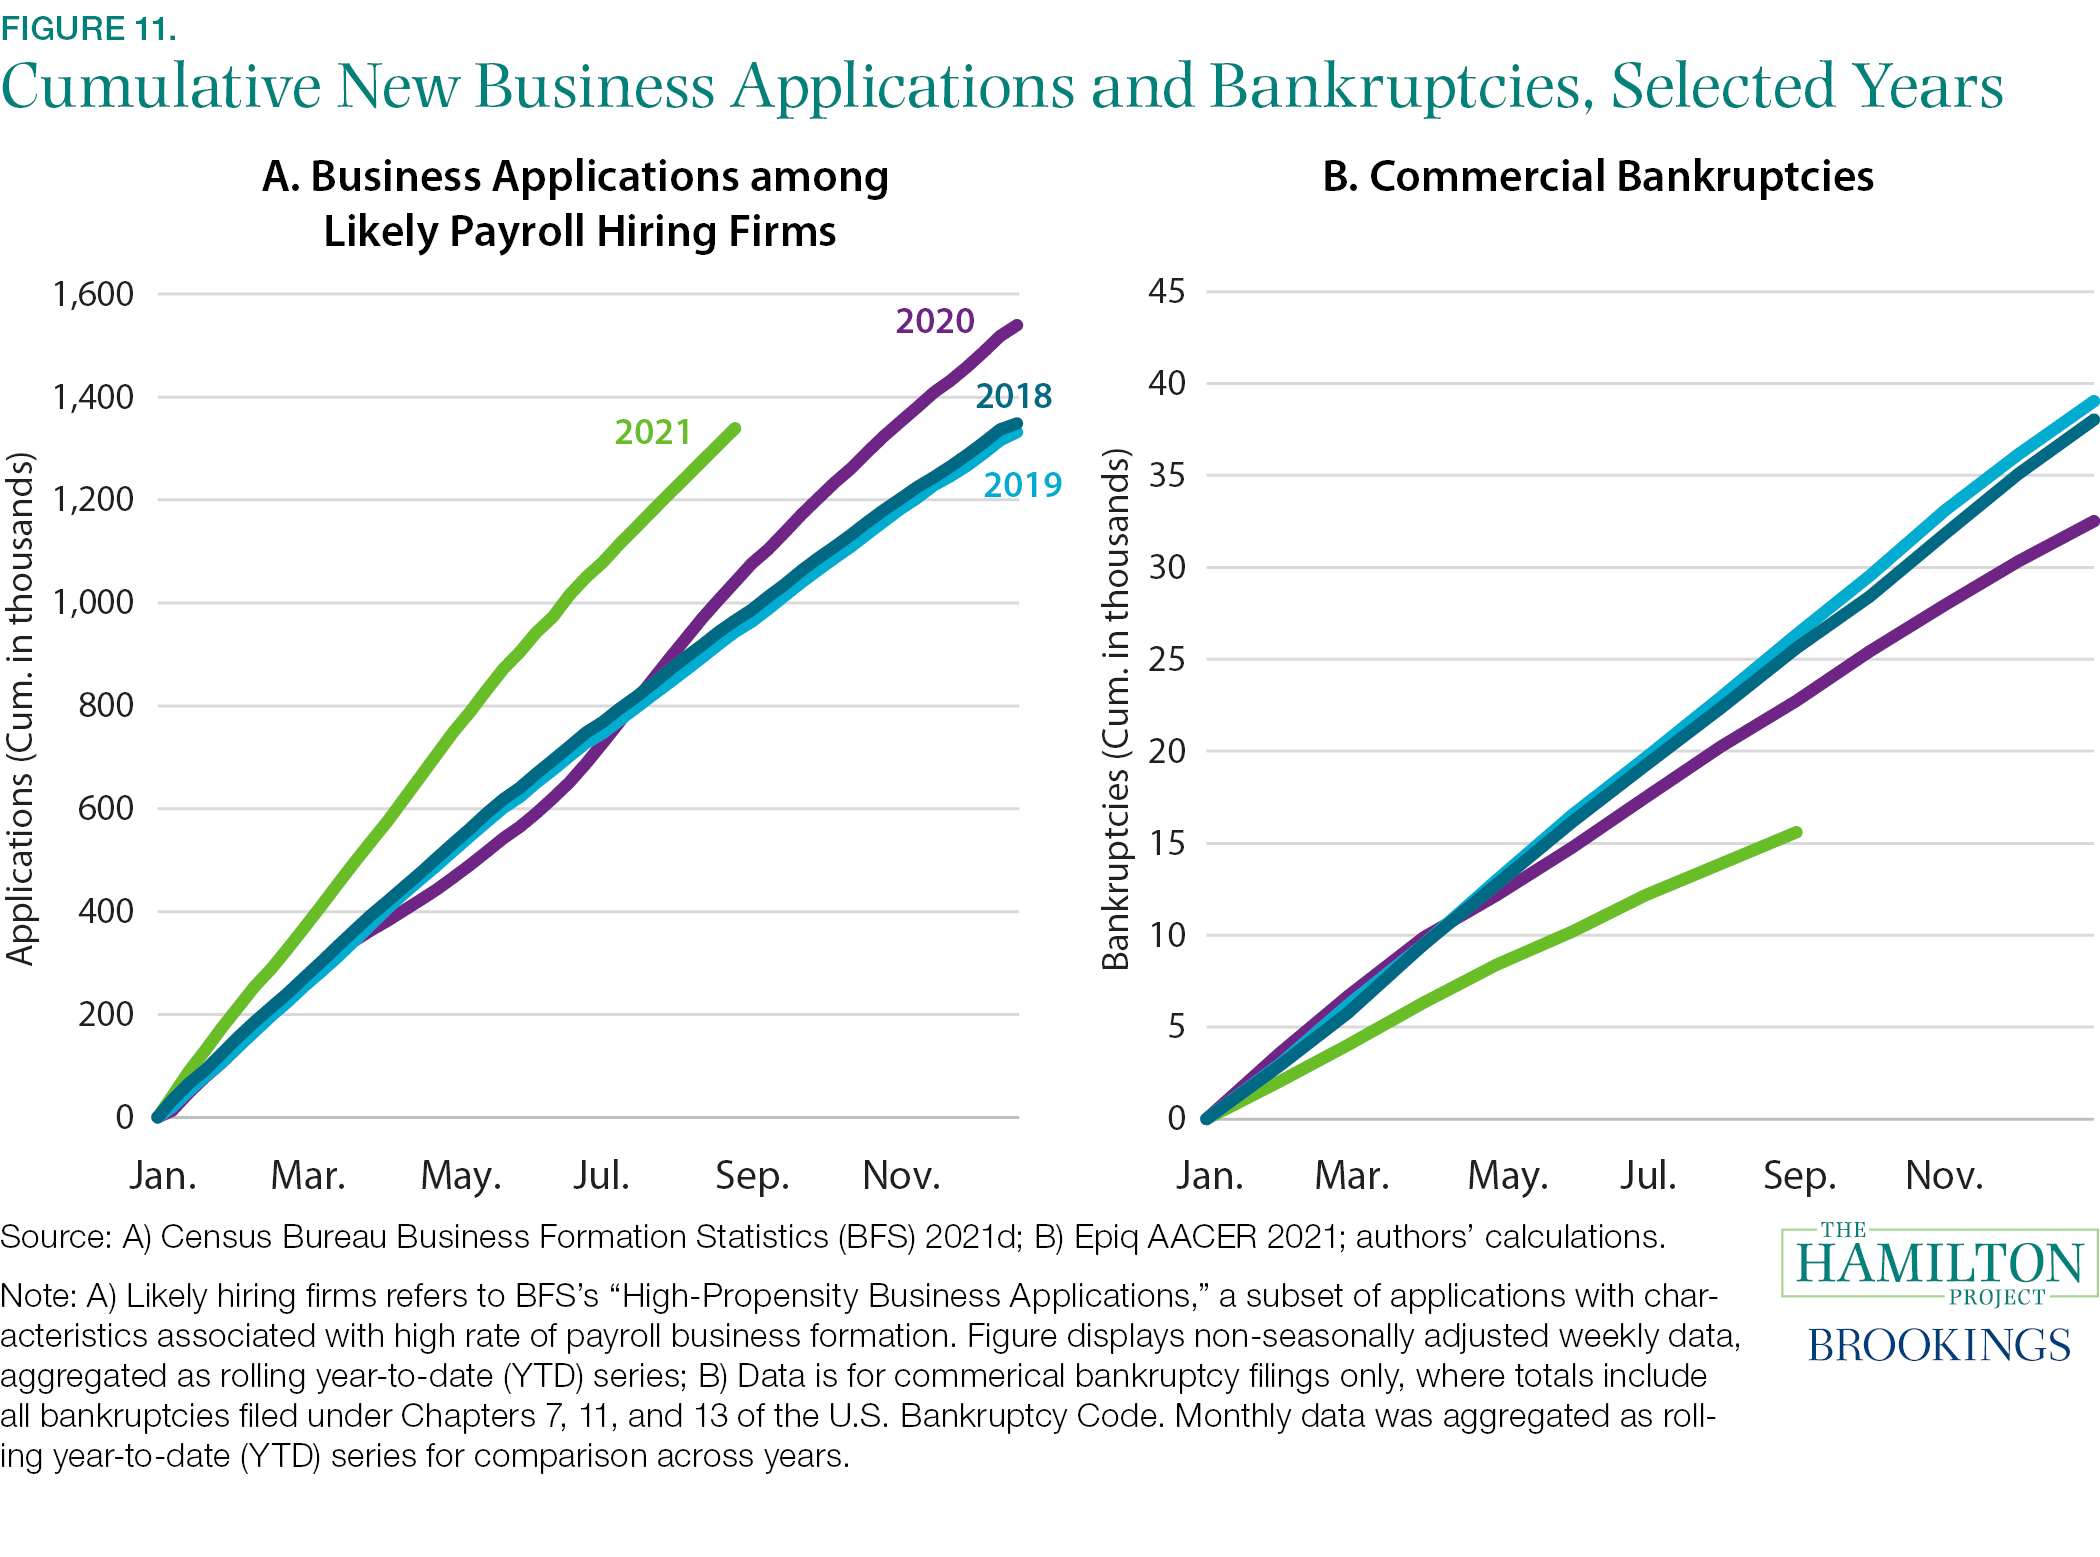 Fact 11: There were more new business applications and fewer bankruptcies in 2020 and 2021 than in 2018 and 2019.